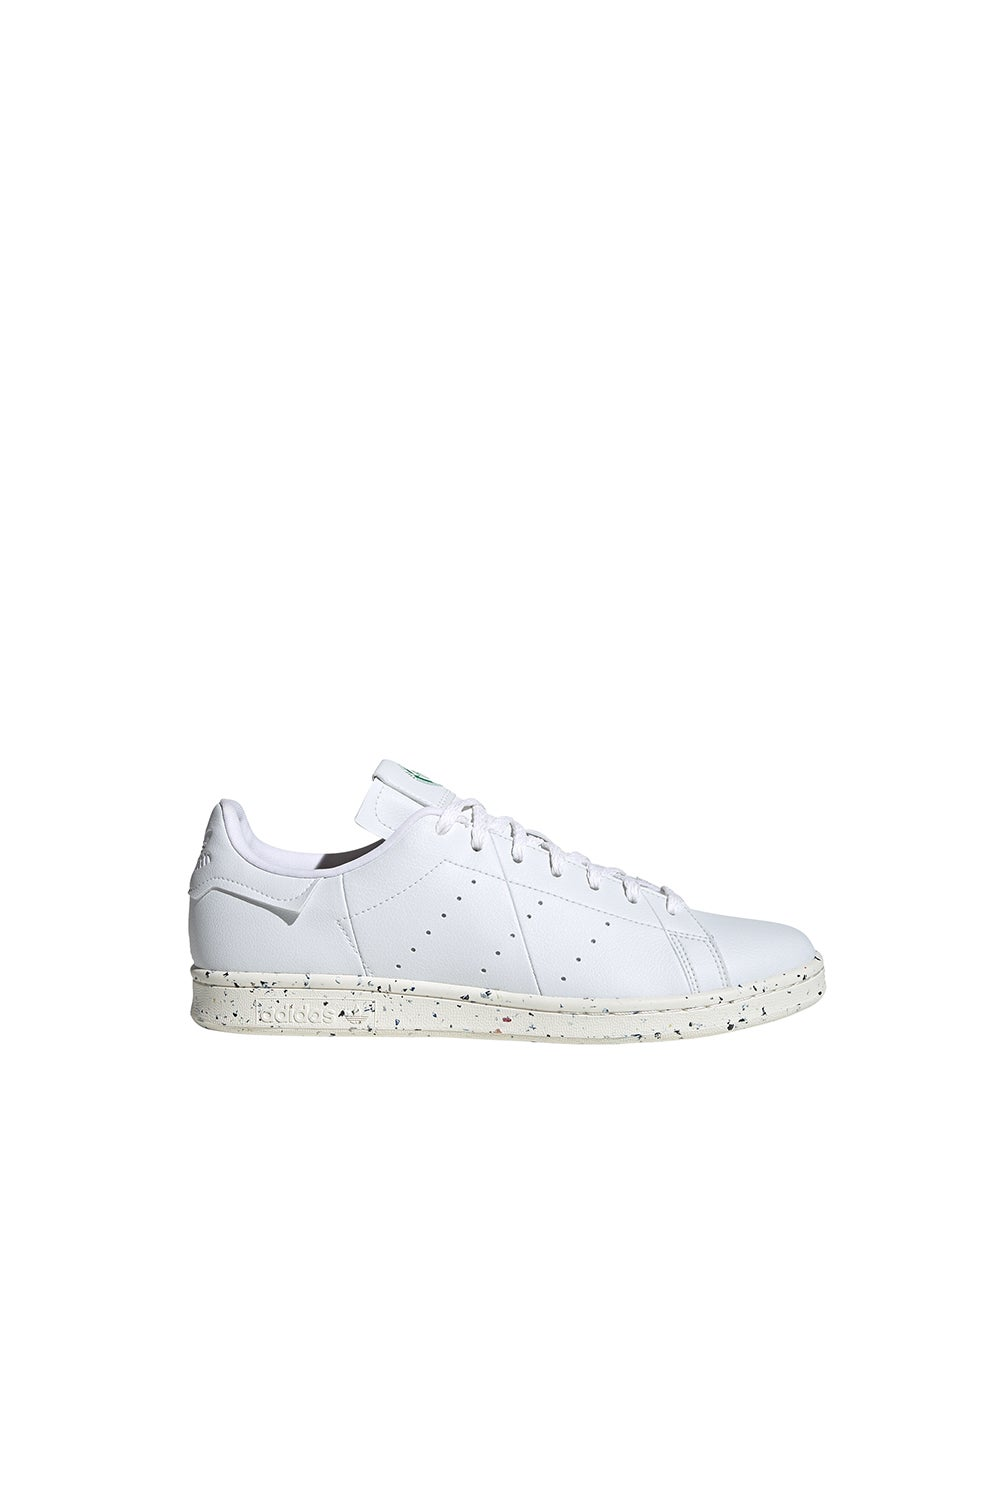 adidas Stan Smith FTWR White/Green